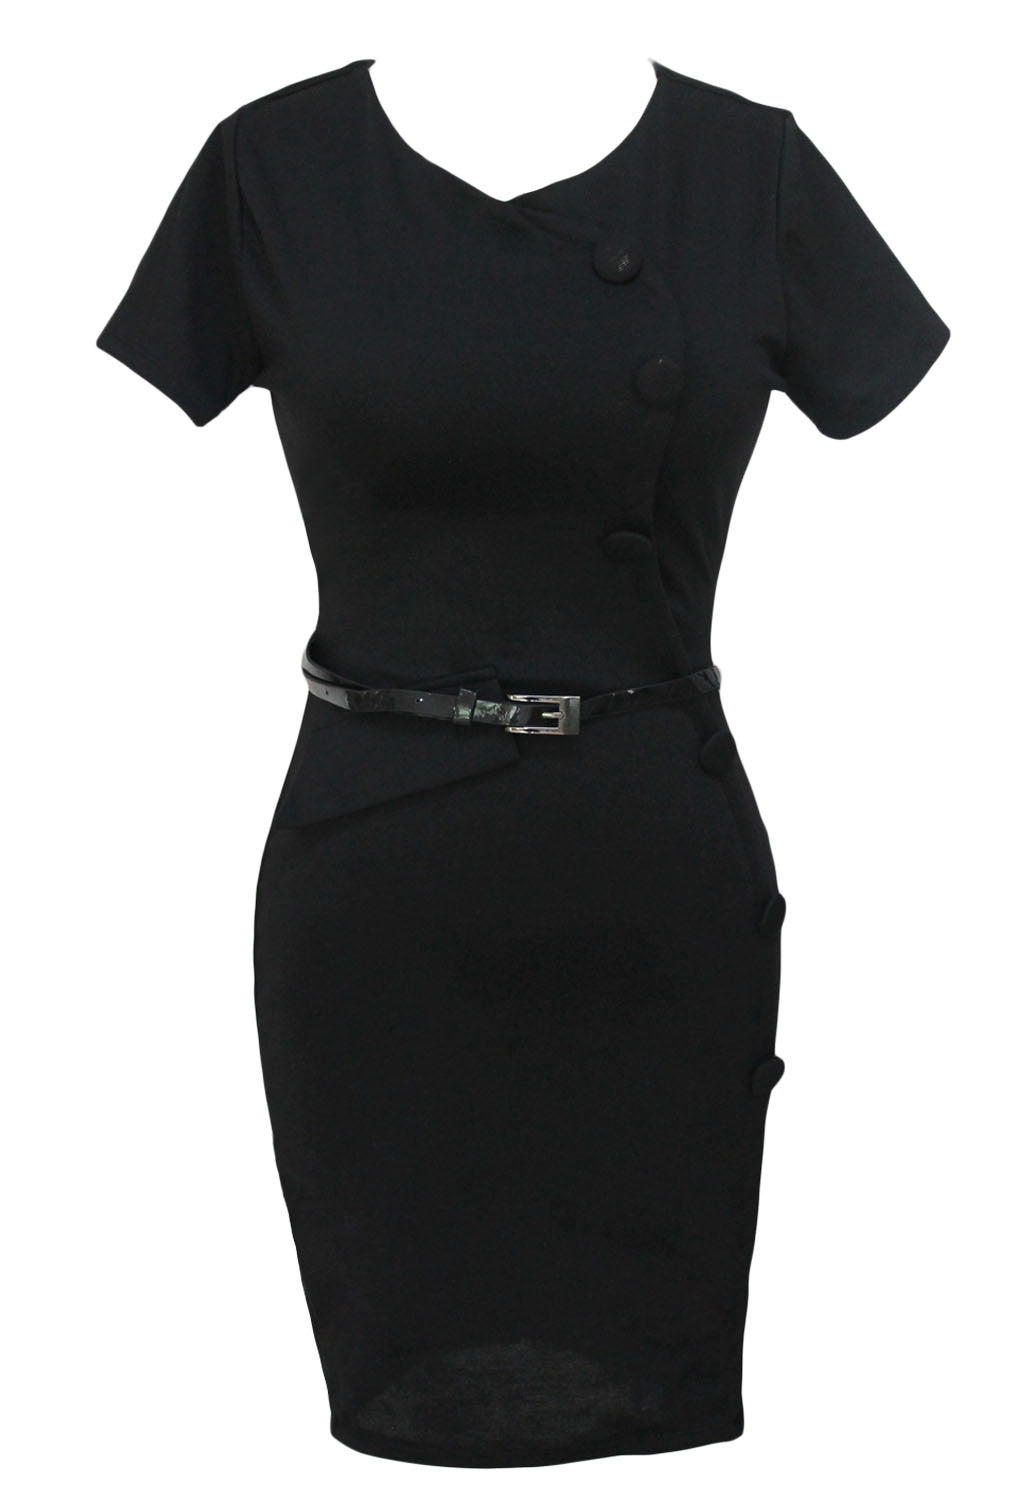 Formal Button Black Pencil Vintage Pinup Signal Fitted Party Shift Sheath Knee-Length